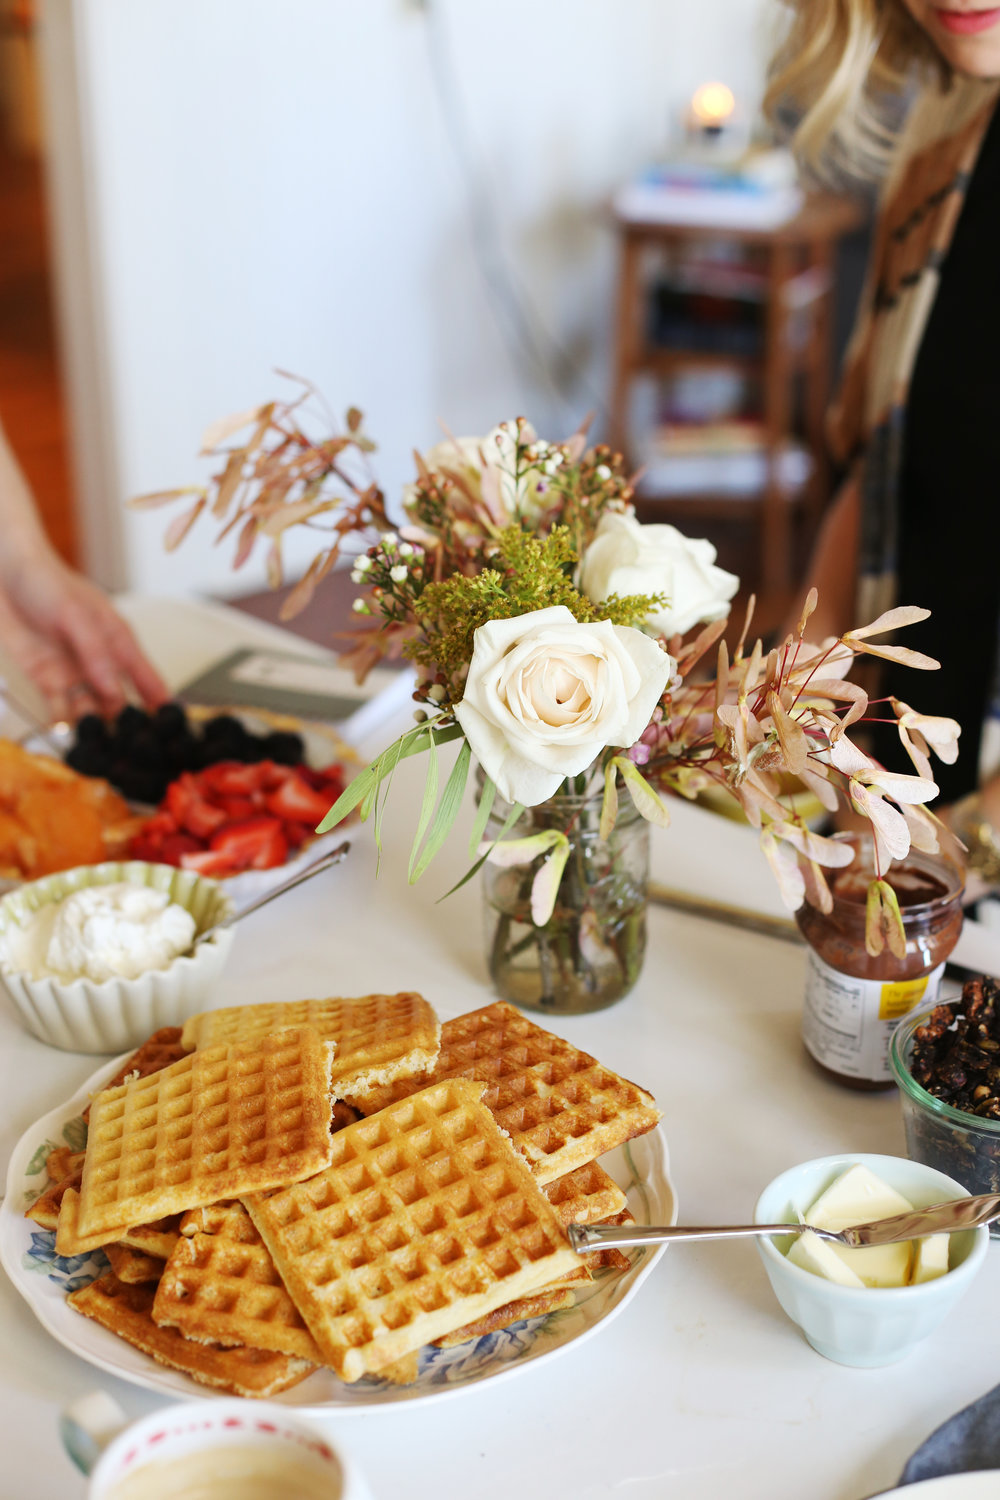 Our breakfast spread consisted of overnight yeasted waffles, fresh whipped cream, honey + cinnamon roasted grapefruit, fruit, Nutella and chocolate espresso granola. Thank you Mary for bringing the beautiful blooms!